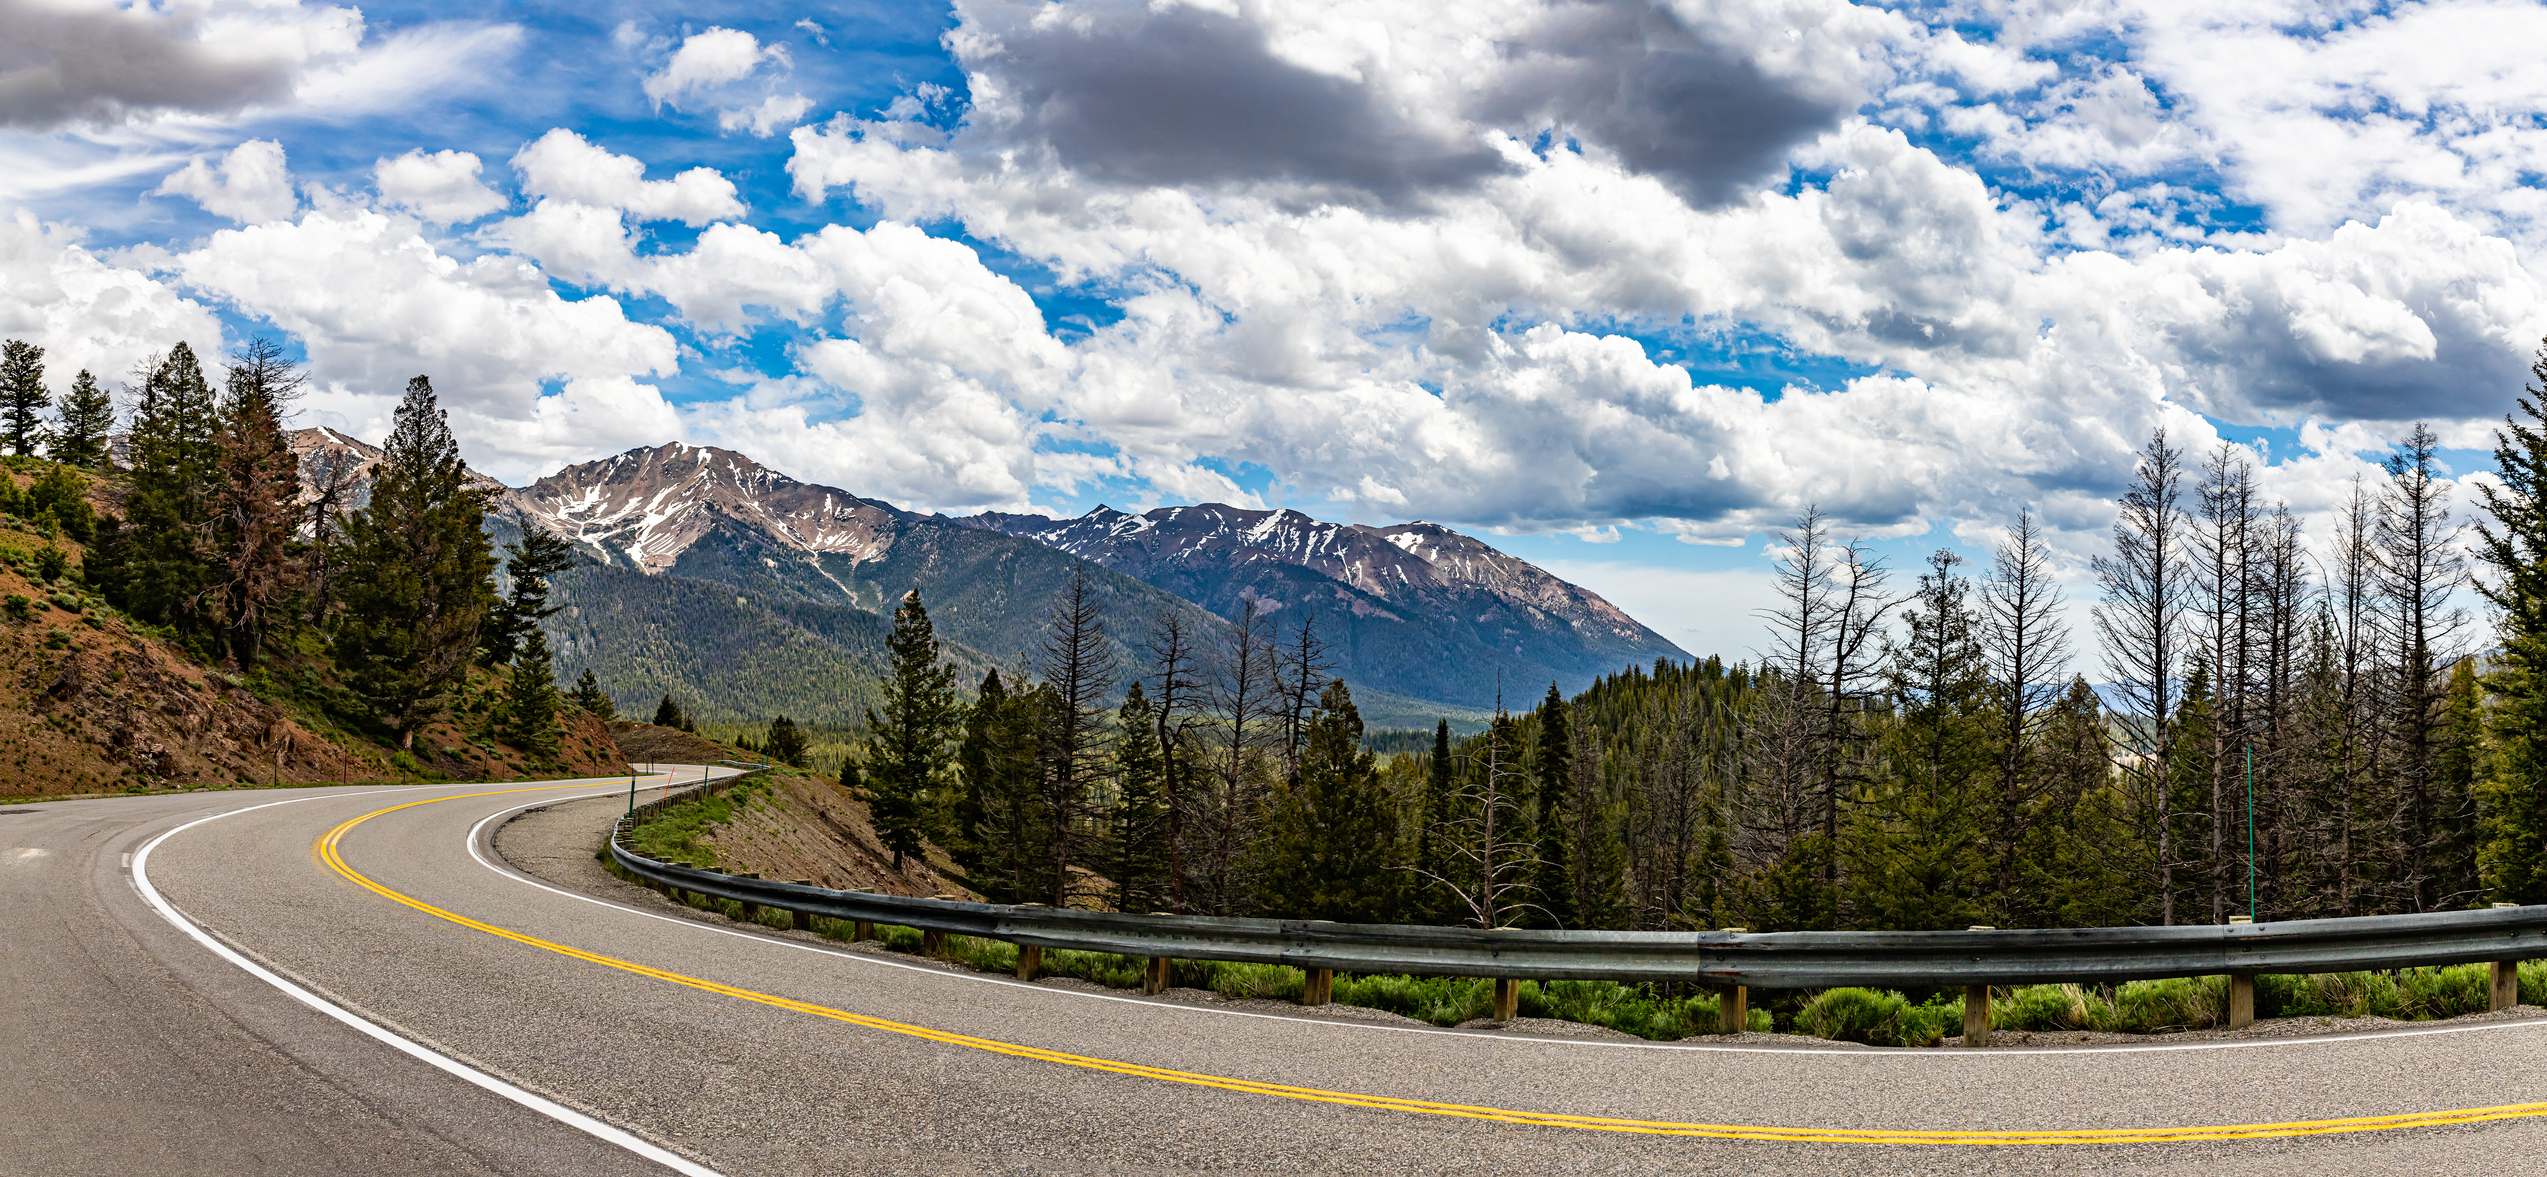 A highway curves through a forested landscape.